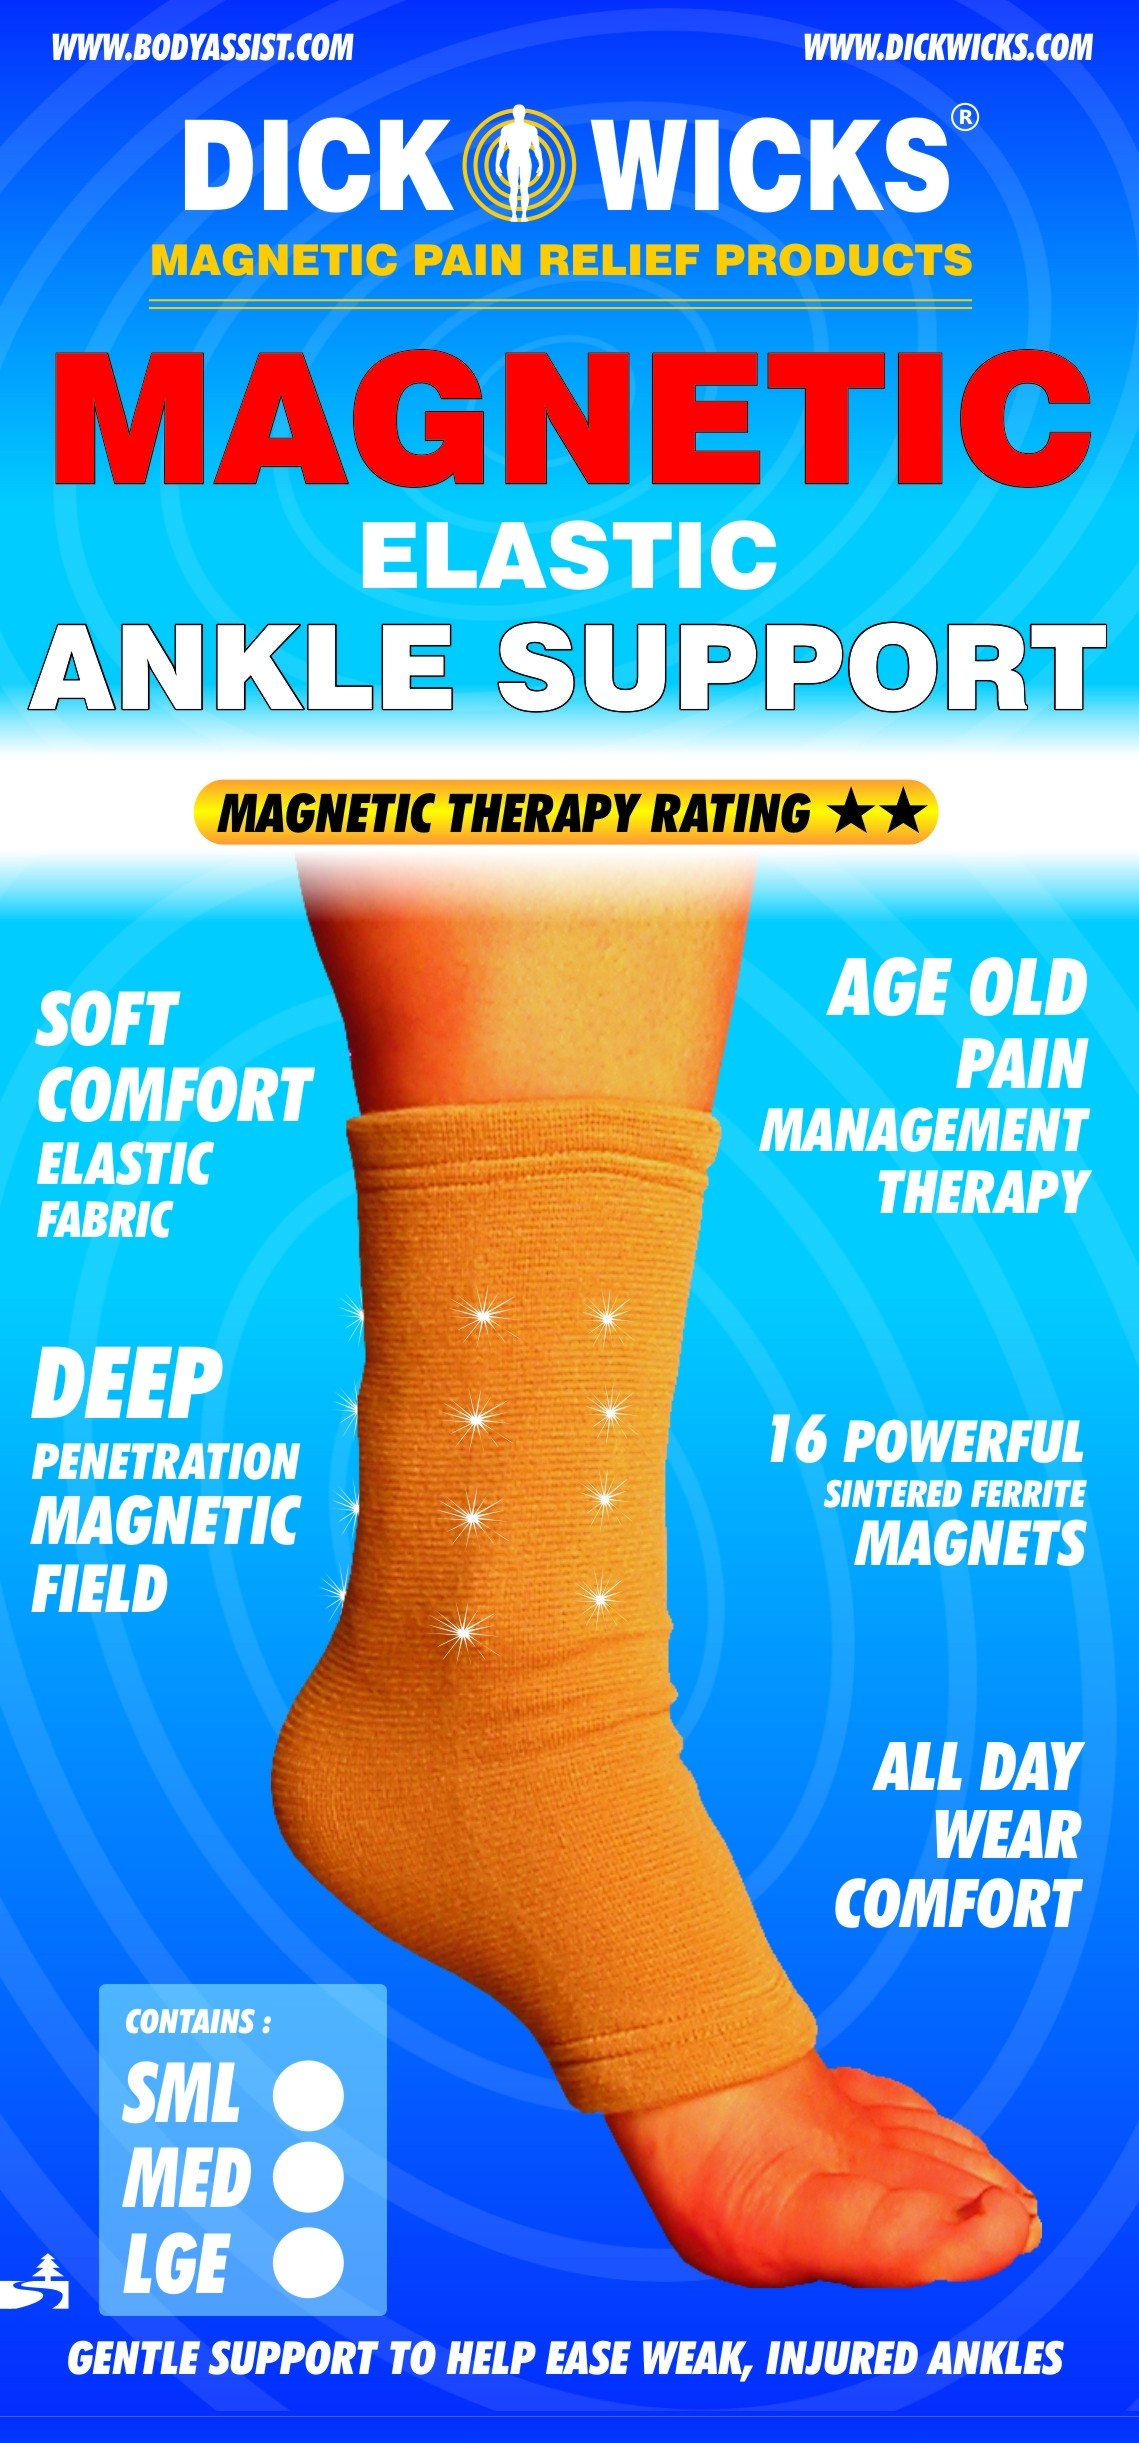 Dick Wicks Slip-On Magnetic Ankle Support